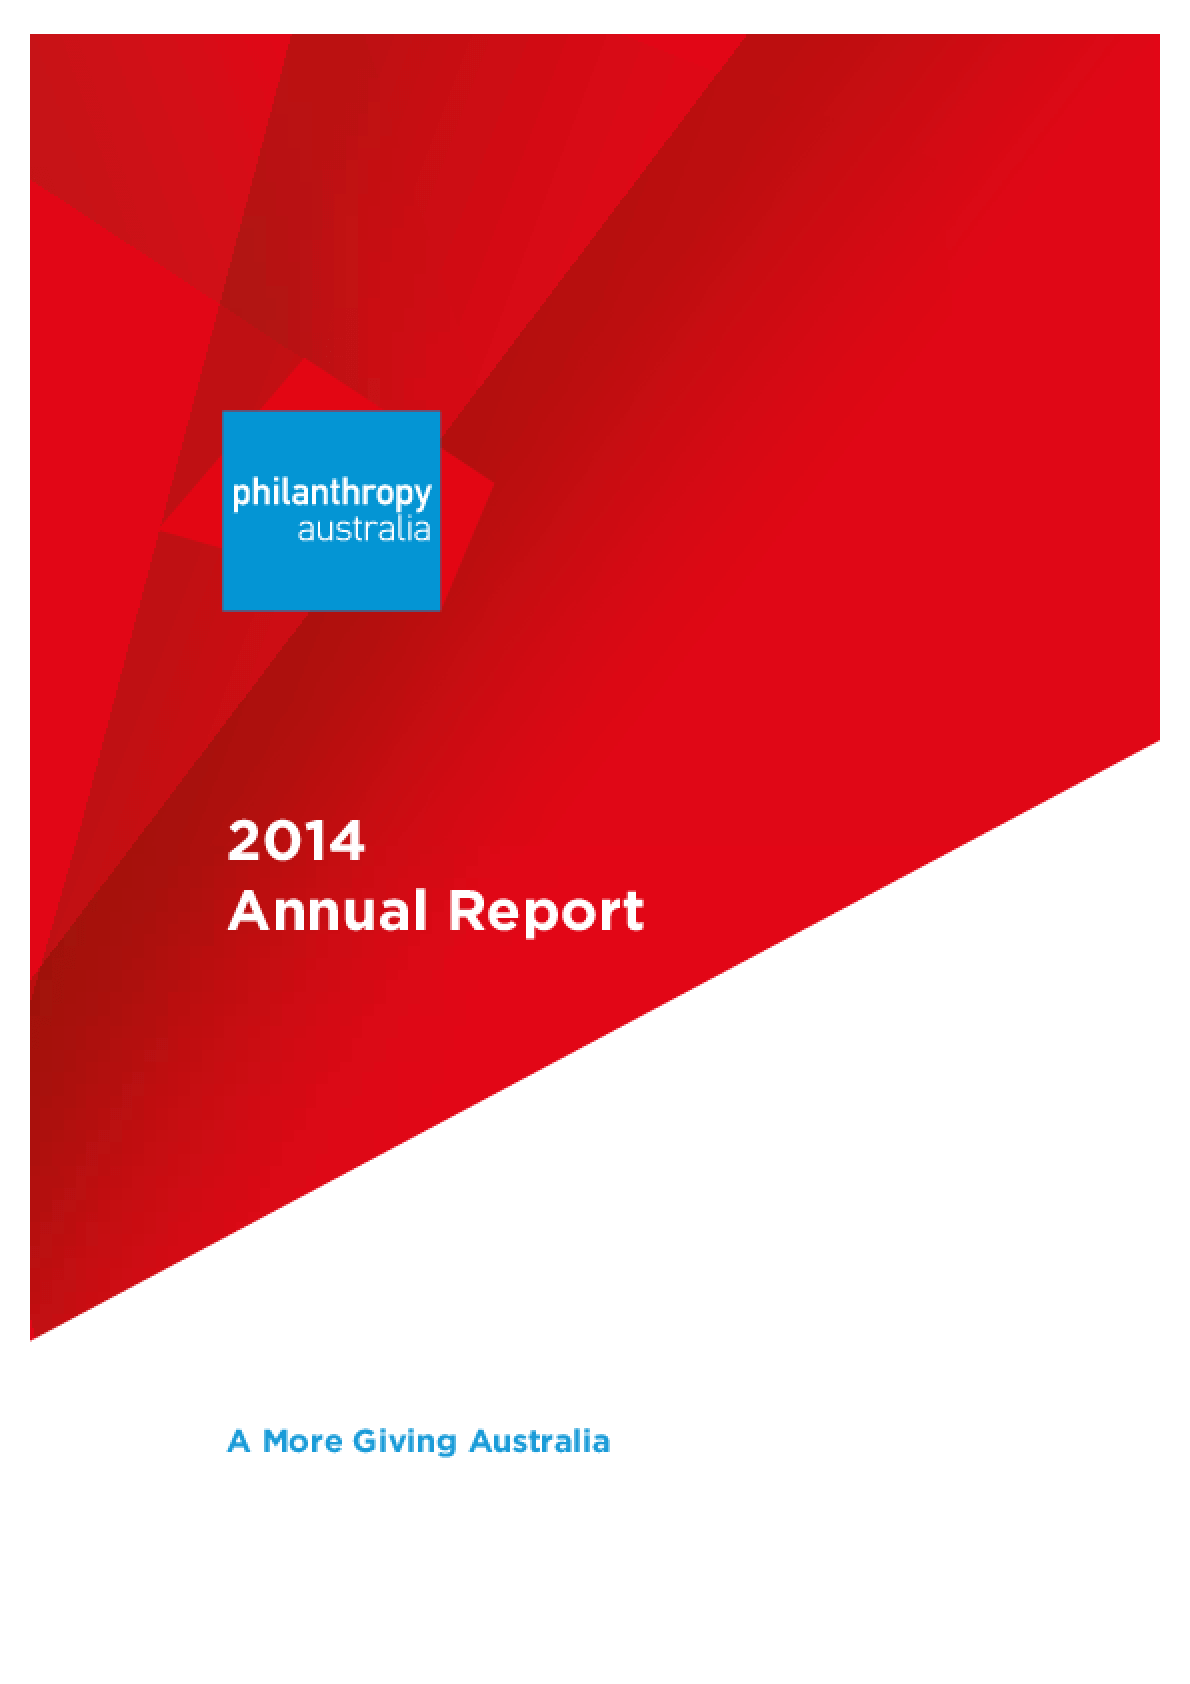 2014 Annual Report: A More Giving Australia